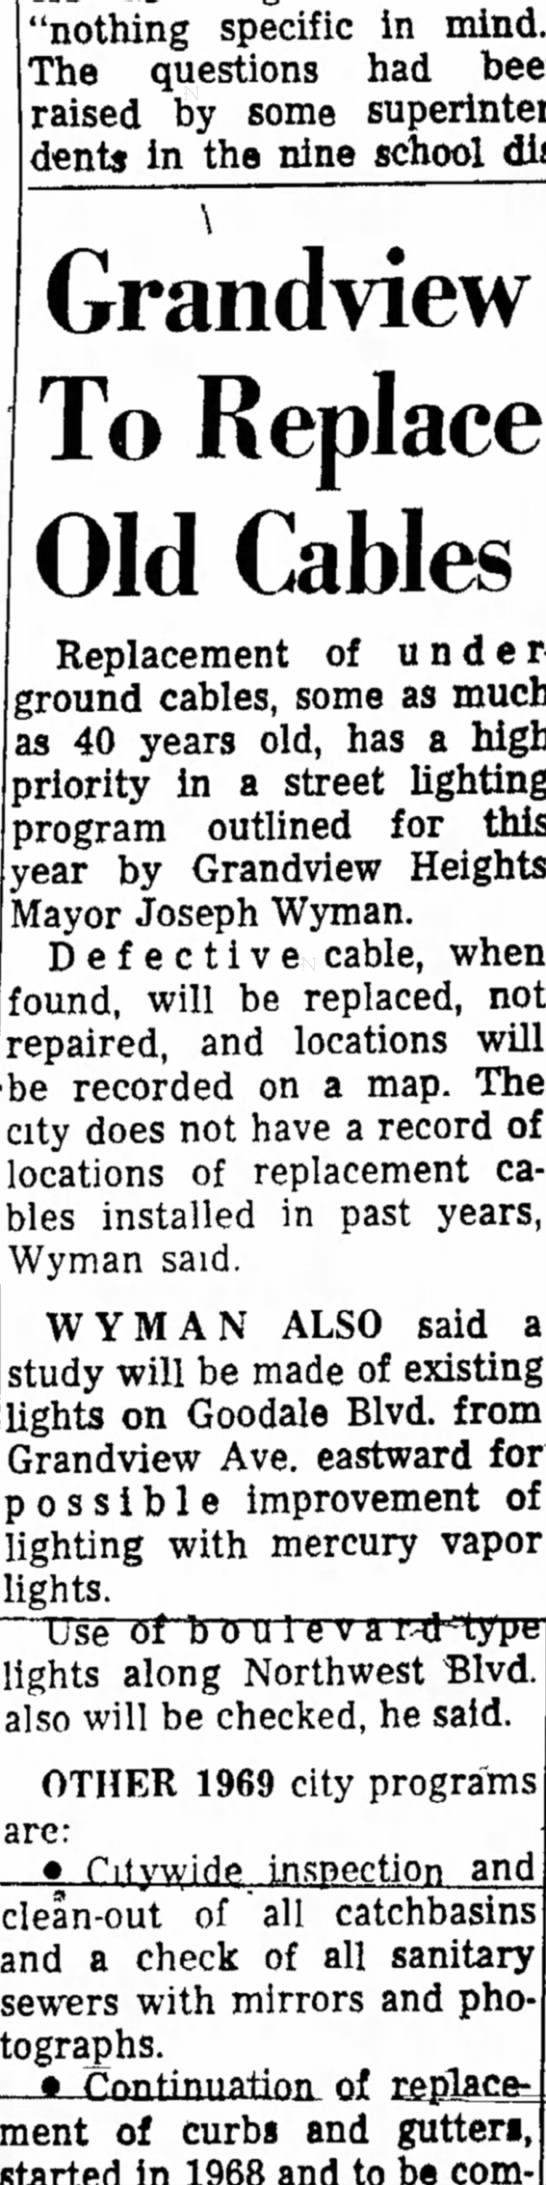 """""""Grandview Heights street light underground cables replaced"""" states Mayor Joseph Wyman. - """"nothing specific in mind."""" The questions had..."""